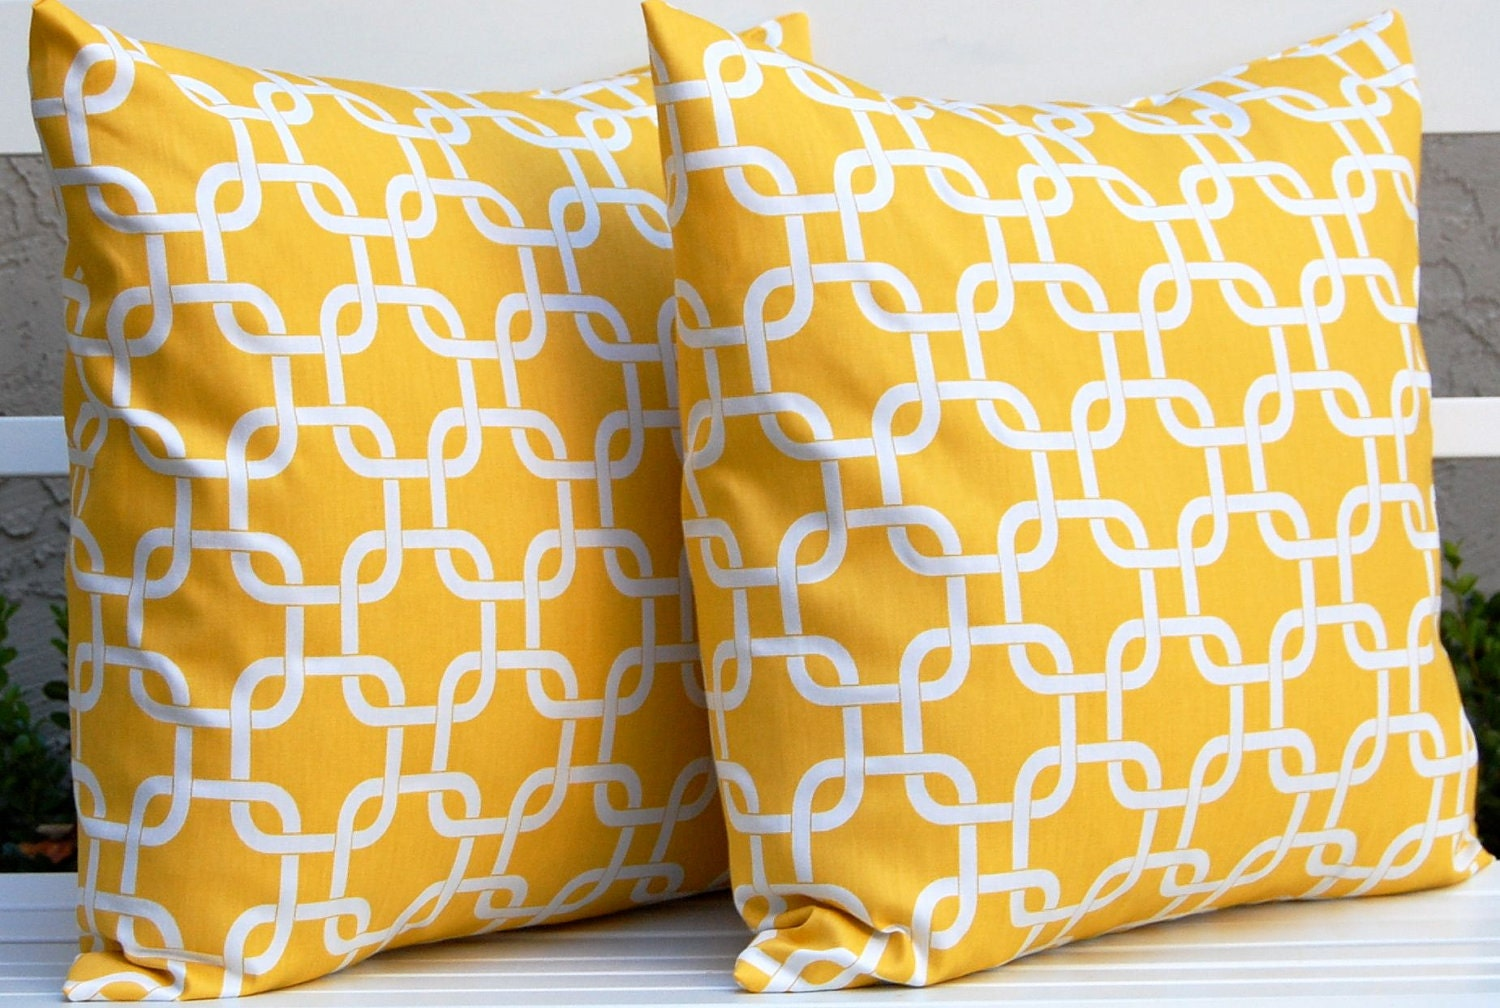 How To Make A Small Decorative Pillow : Pillows Yellow Pillows Yellow Throw Pillow by FestiveHomeDecor